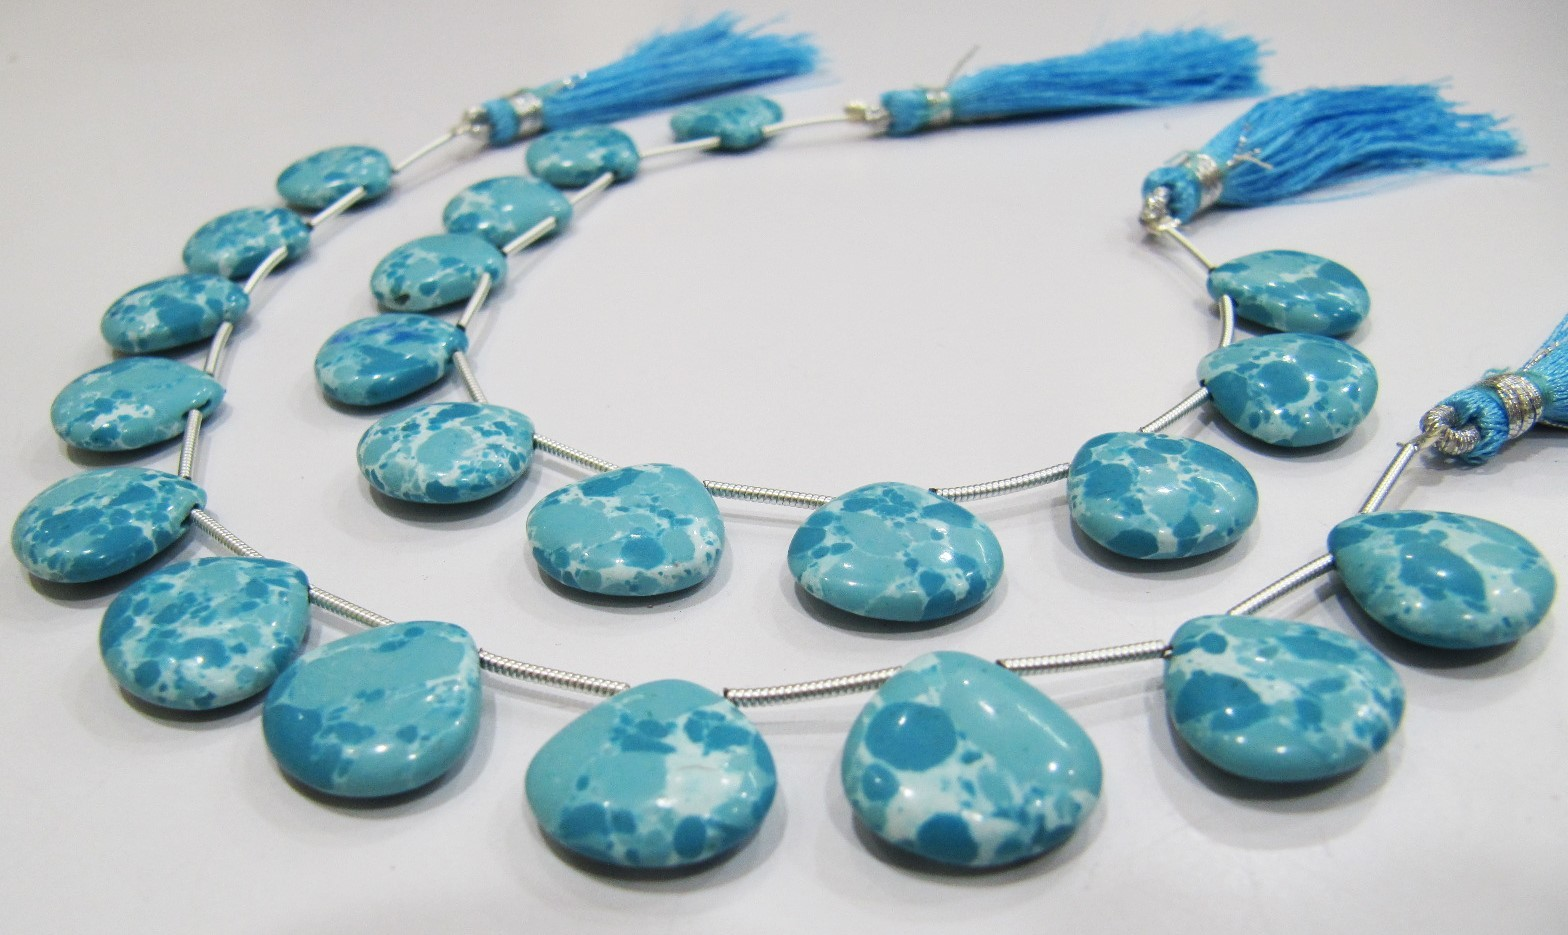 AAA Quality Blue Turquoise Smooth Plain Beads